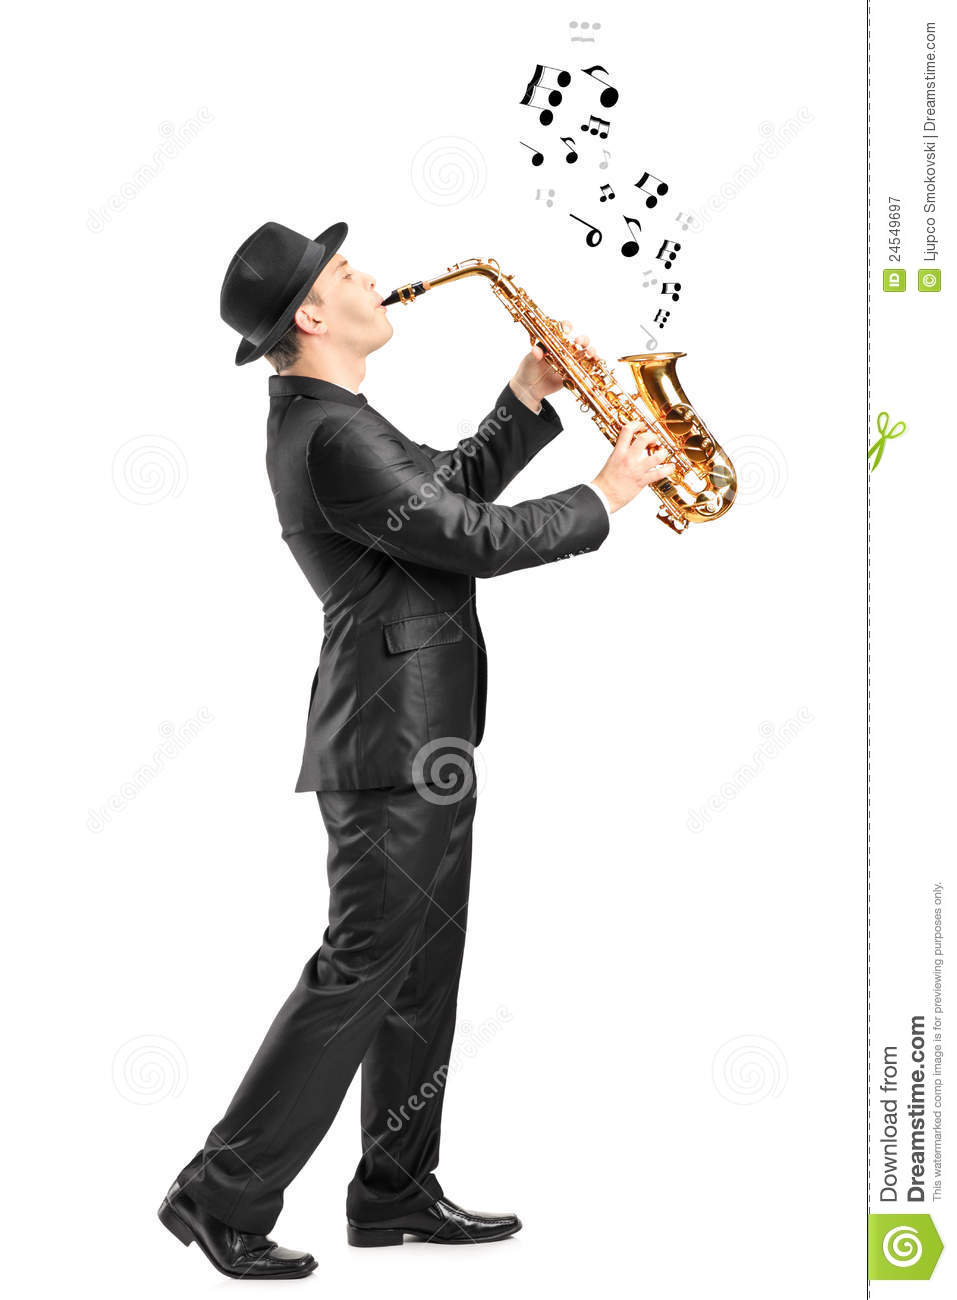 Fanfare Clipart together with A Man Blowing Into A Trumpet in addition Robot Wars likewise 60th birthday gifts 1949 american classic tshirt 235726264588306770 moreover England6331 Photo. on cartoon guy playing trumpet